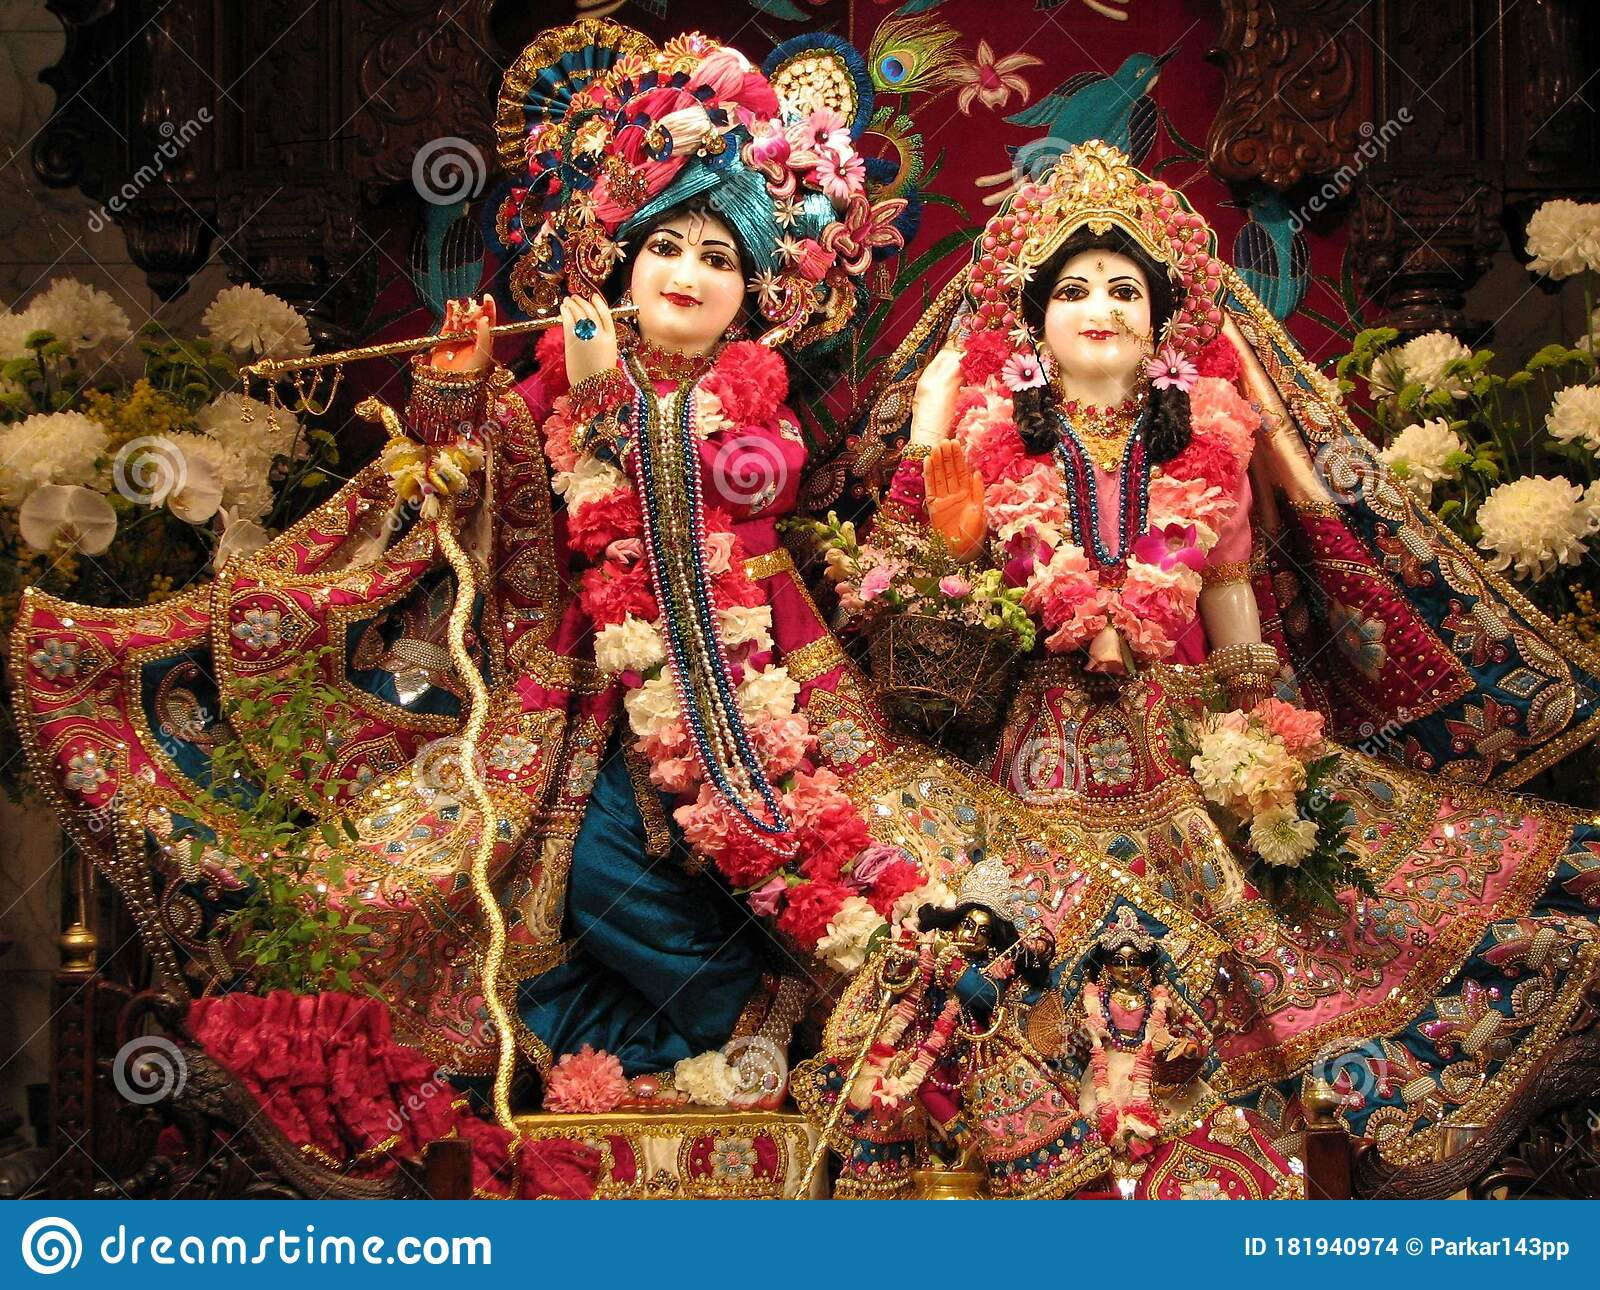 1 852 Radha Krishna Photos Free Royalty Free Stock Photos From Dreamstime